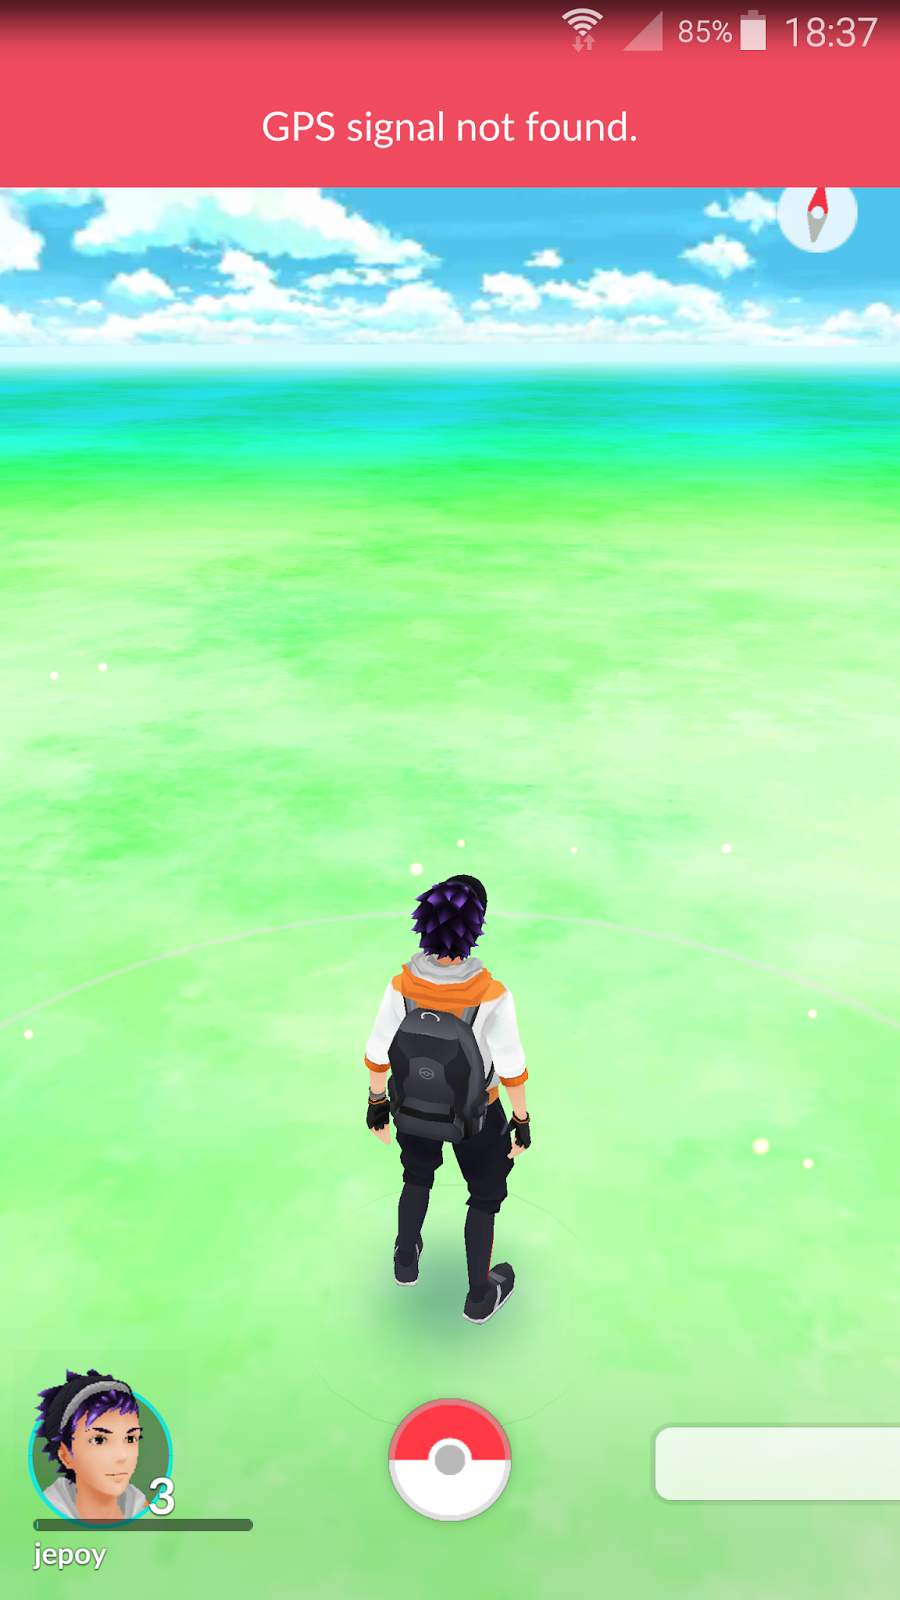 How to fix 'GPS signal not found' on #PokemonGO - GameOPS